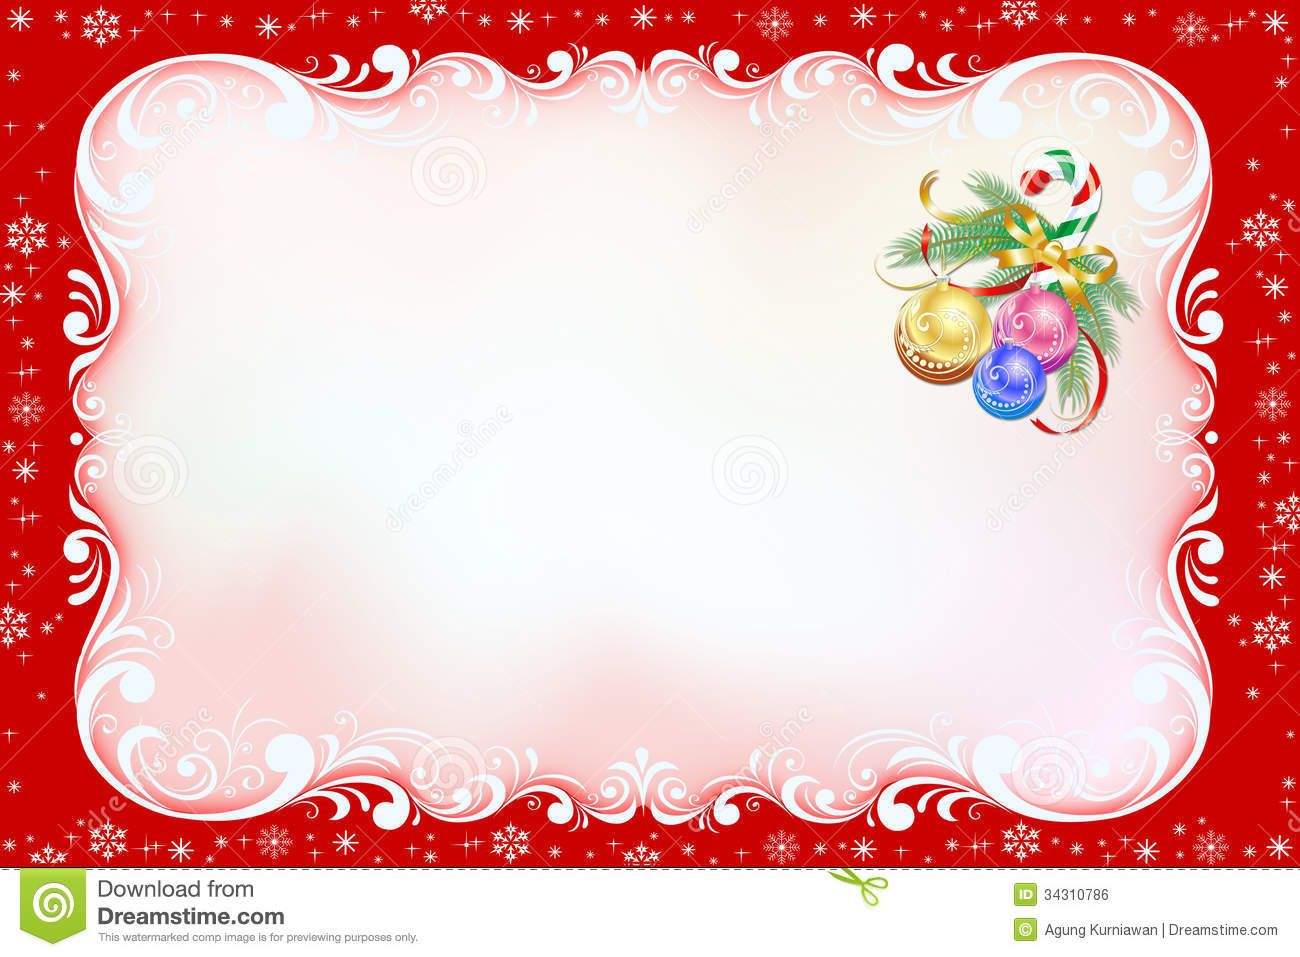 Santa And Friends Card Toppers Google Search Tarjetas De